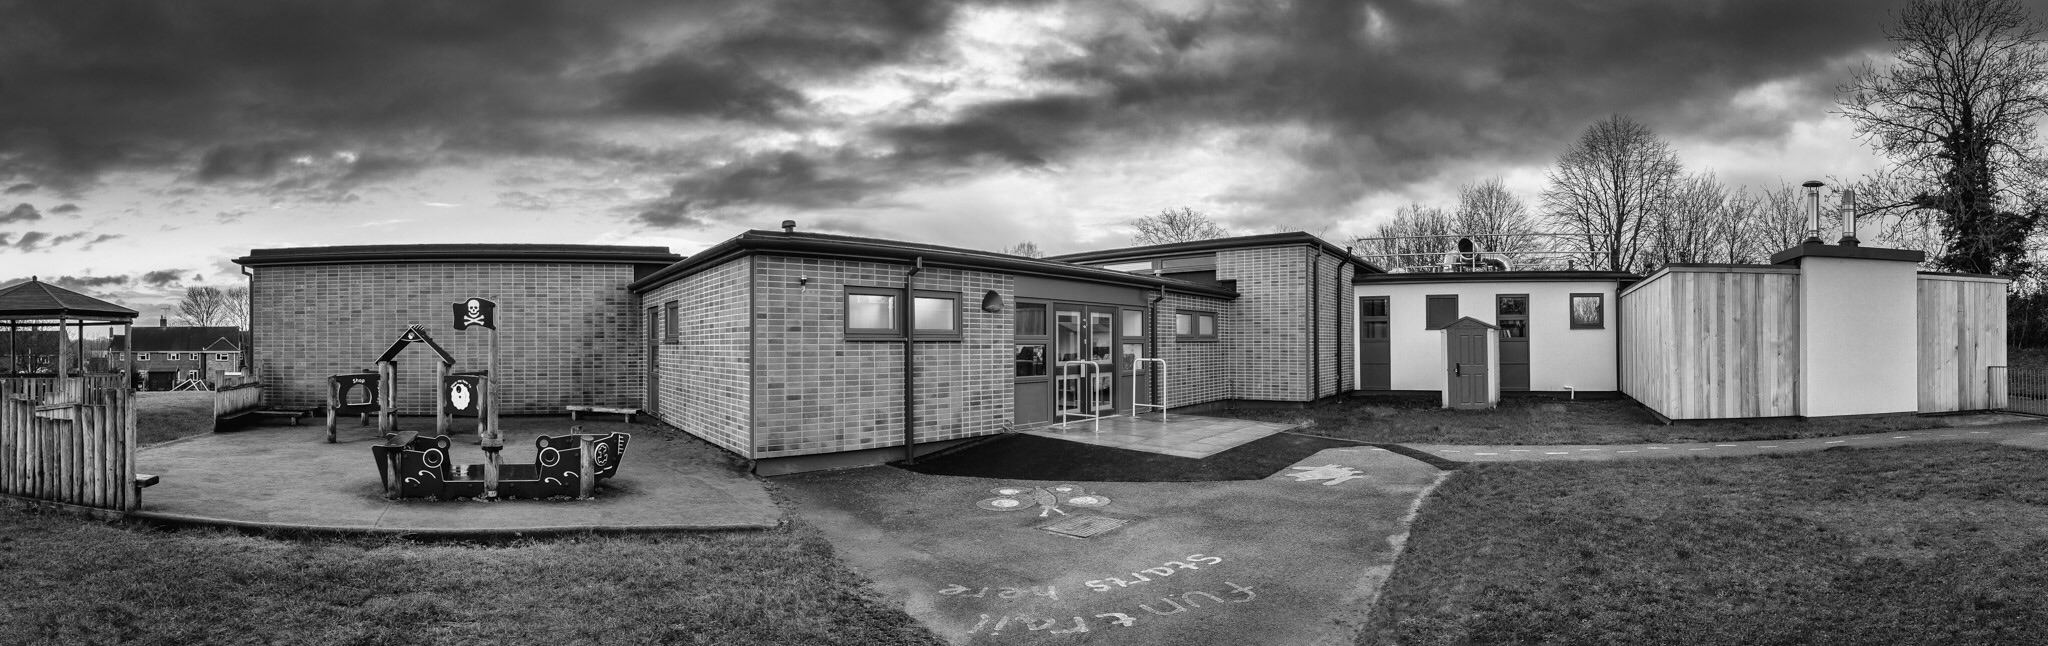 Barton Stacey School. Panoramic architectural photography in Hampshire.